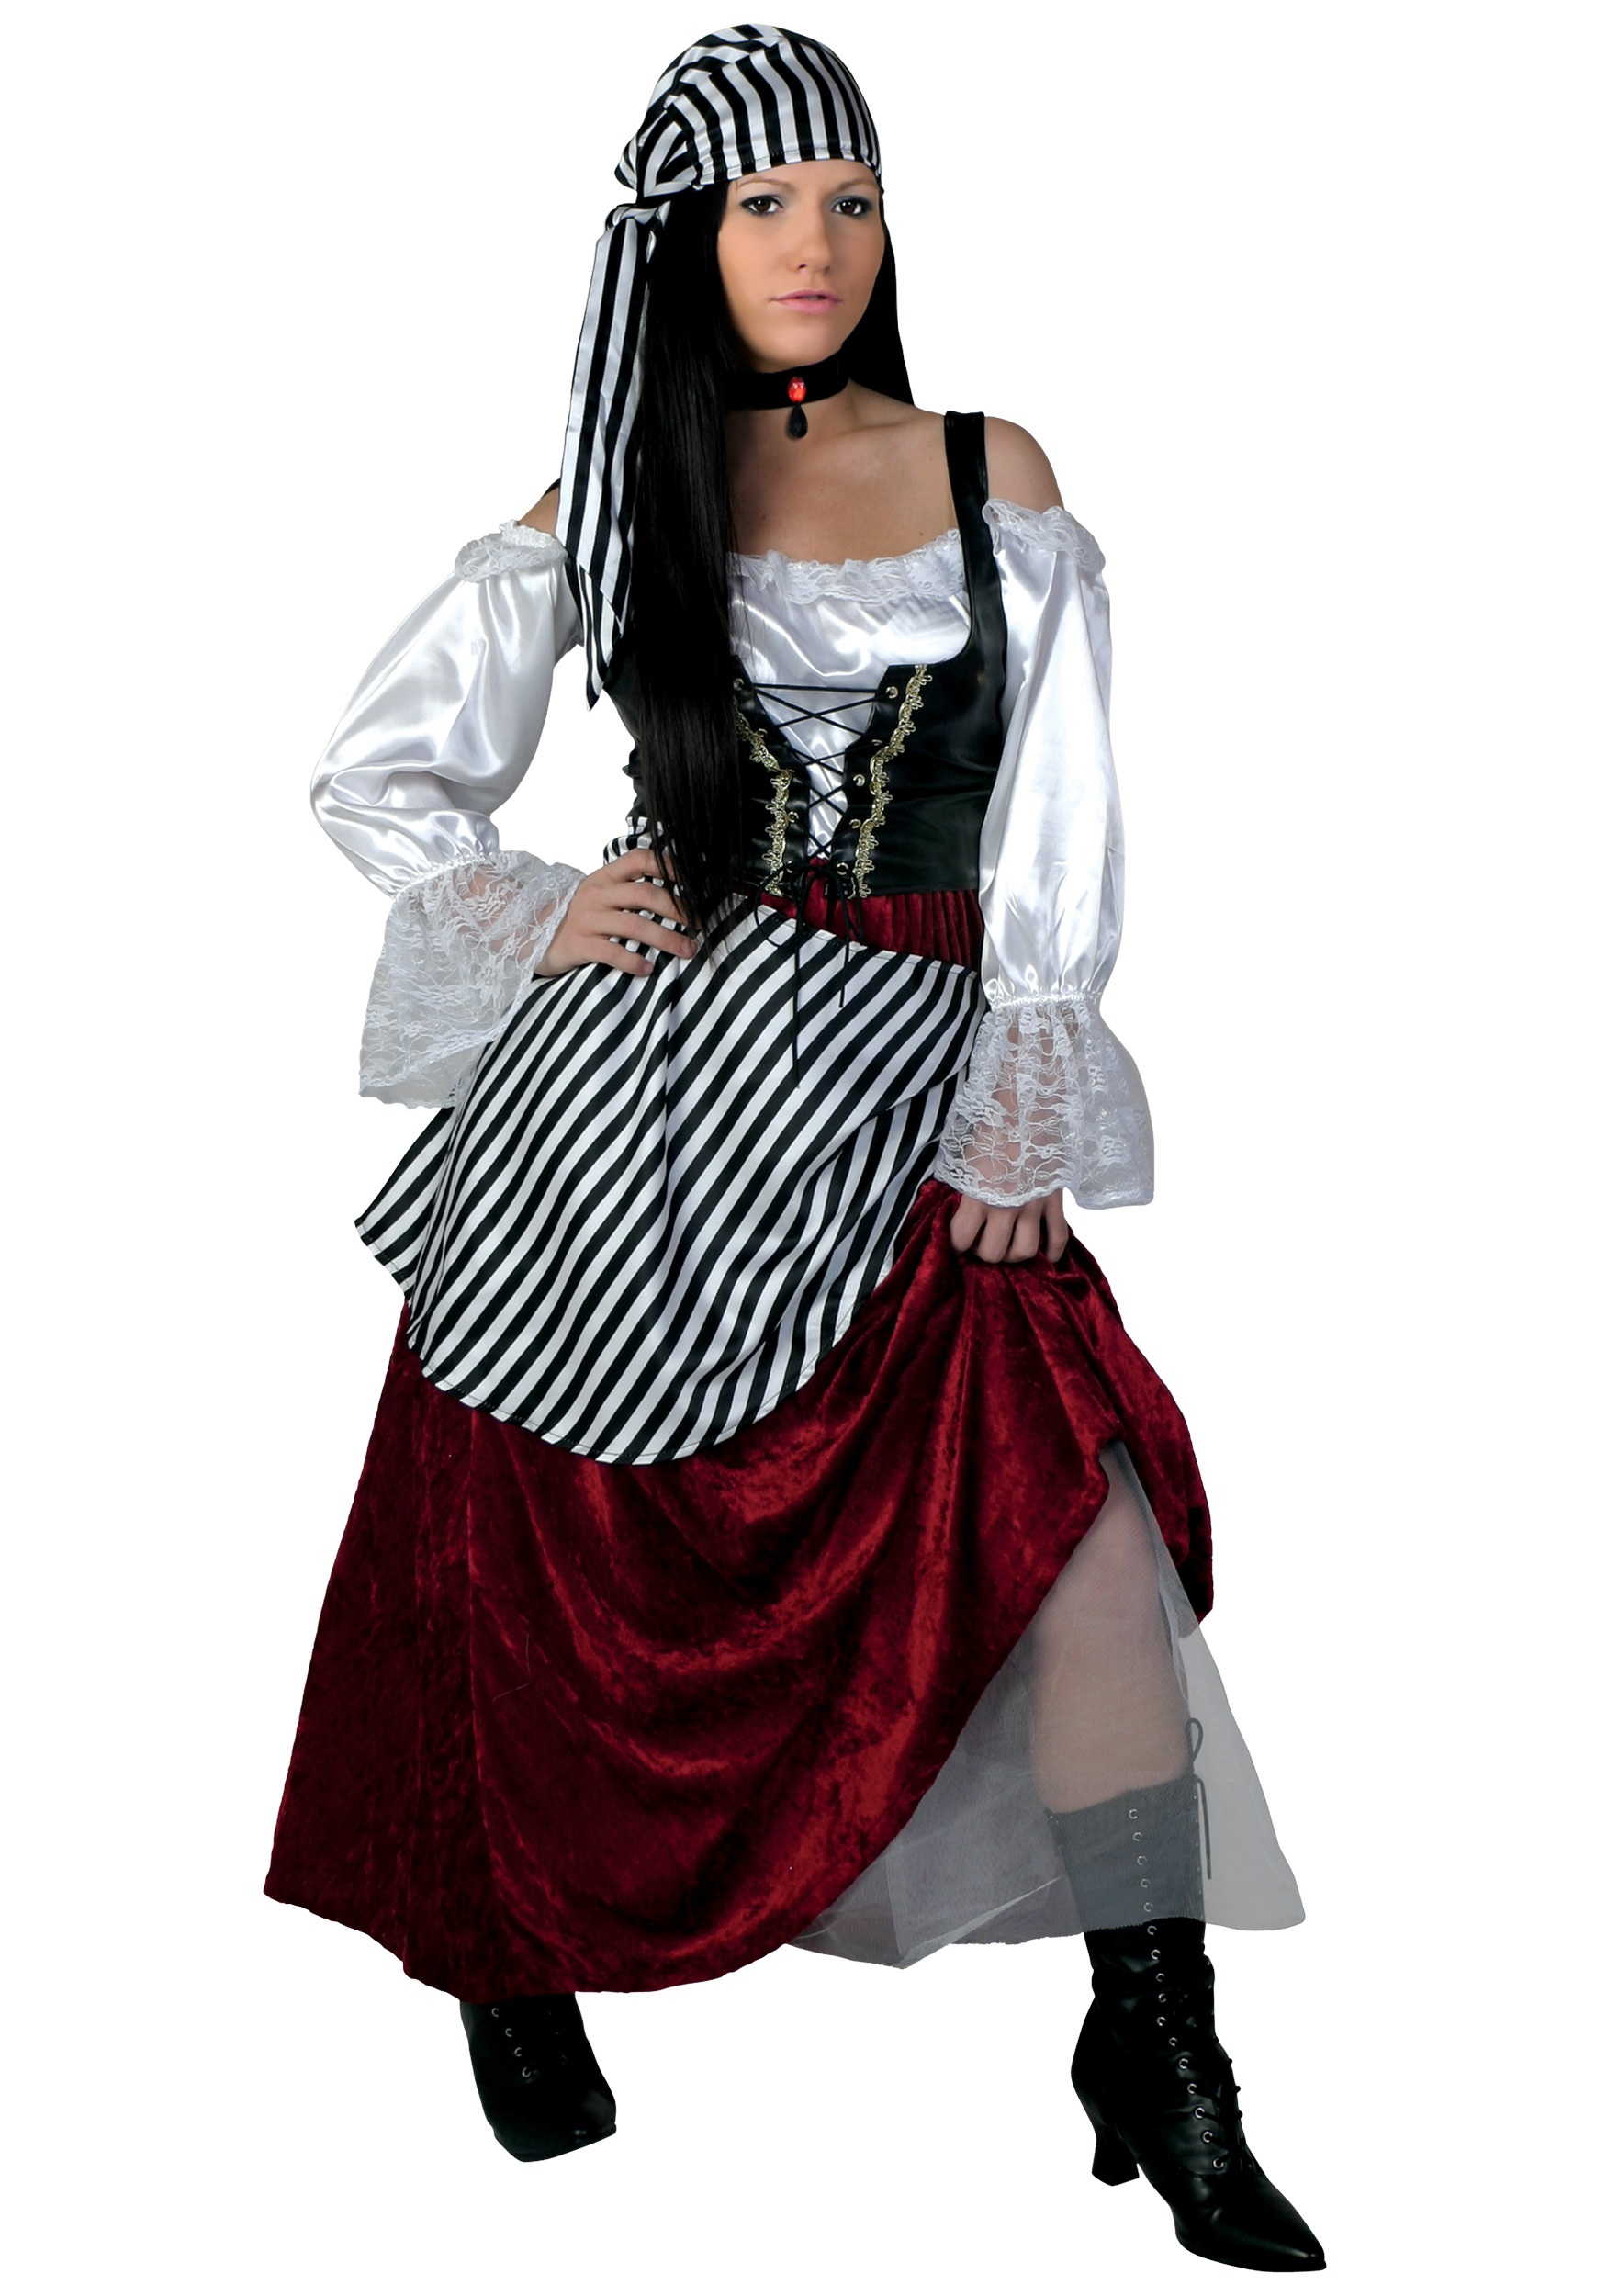 Plus Size Deluxe Pirate Wench Costume  sc 1 st  Halloween Costumes & Pirate Costumes for Women - Female Pirate Halloween Costume